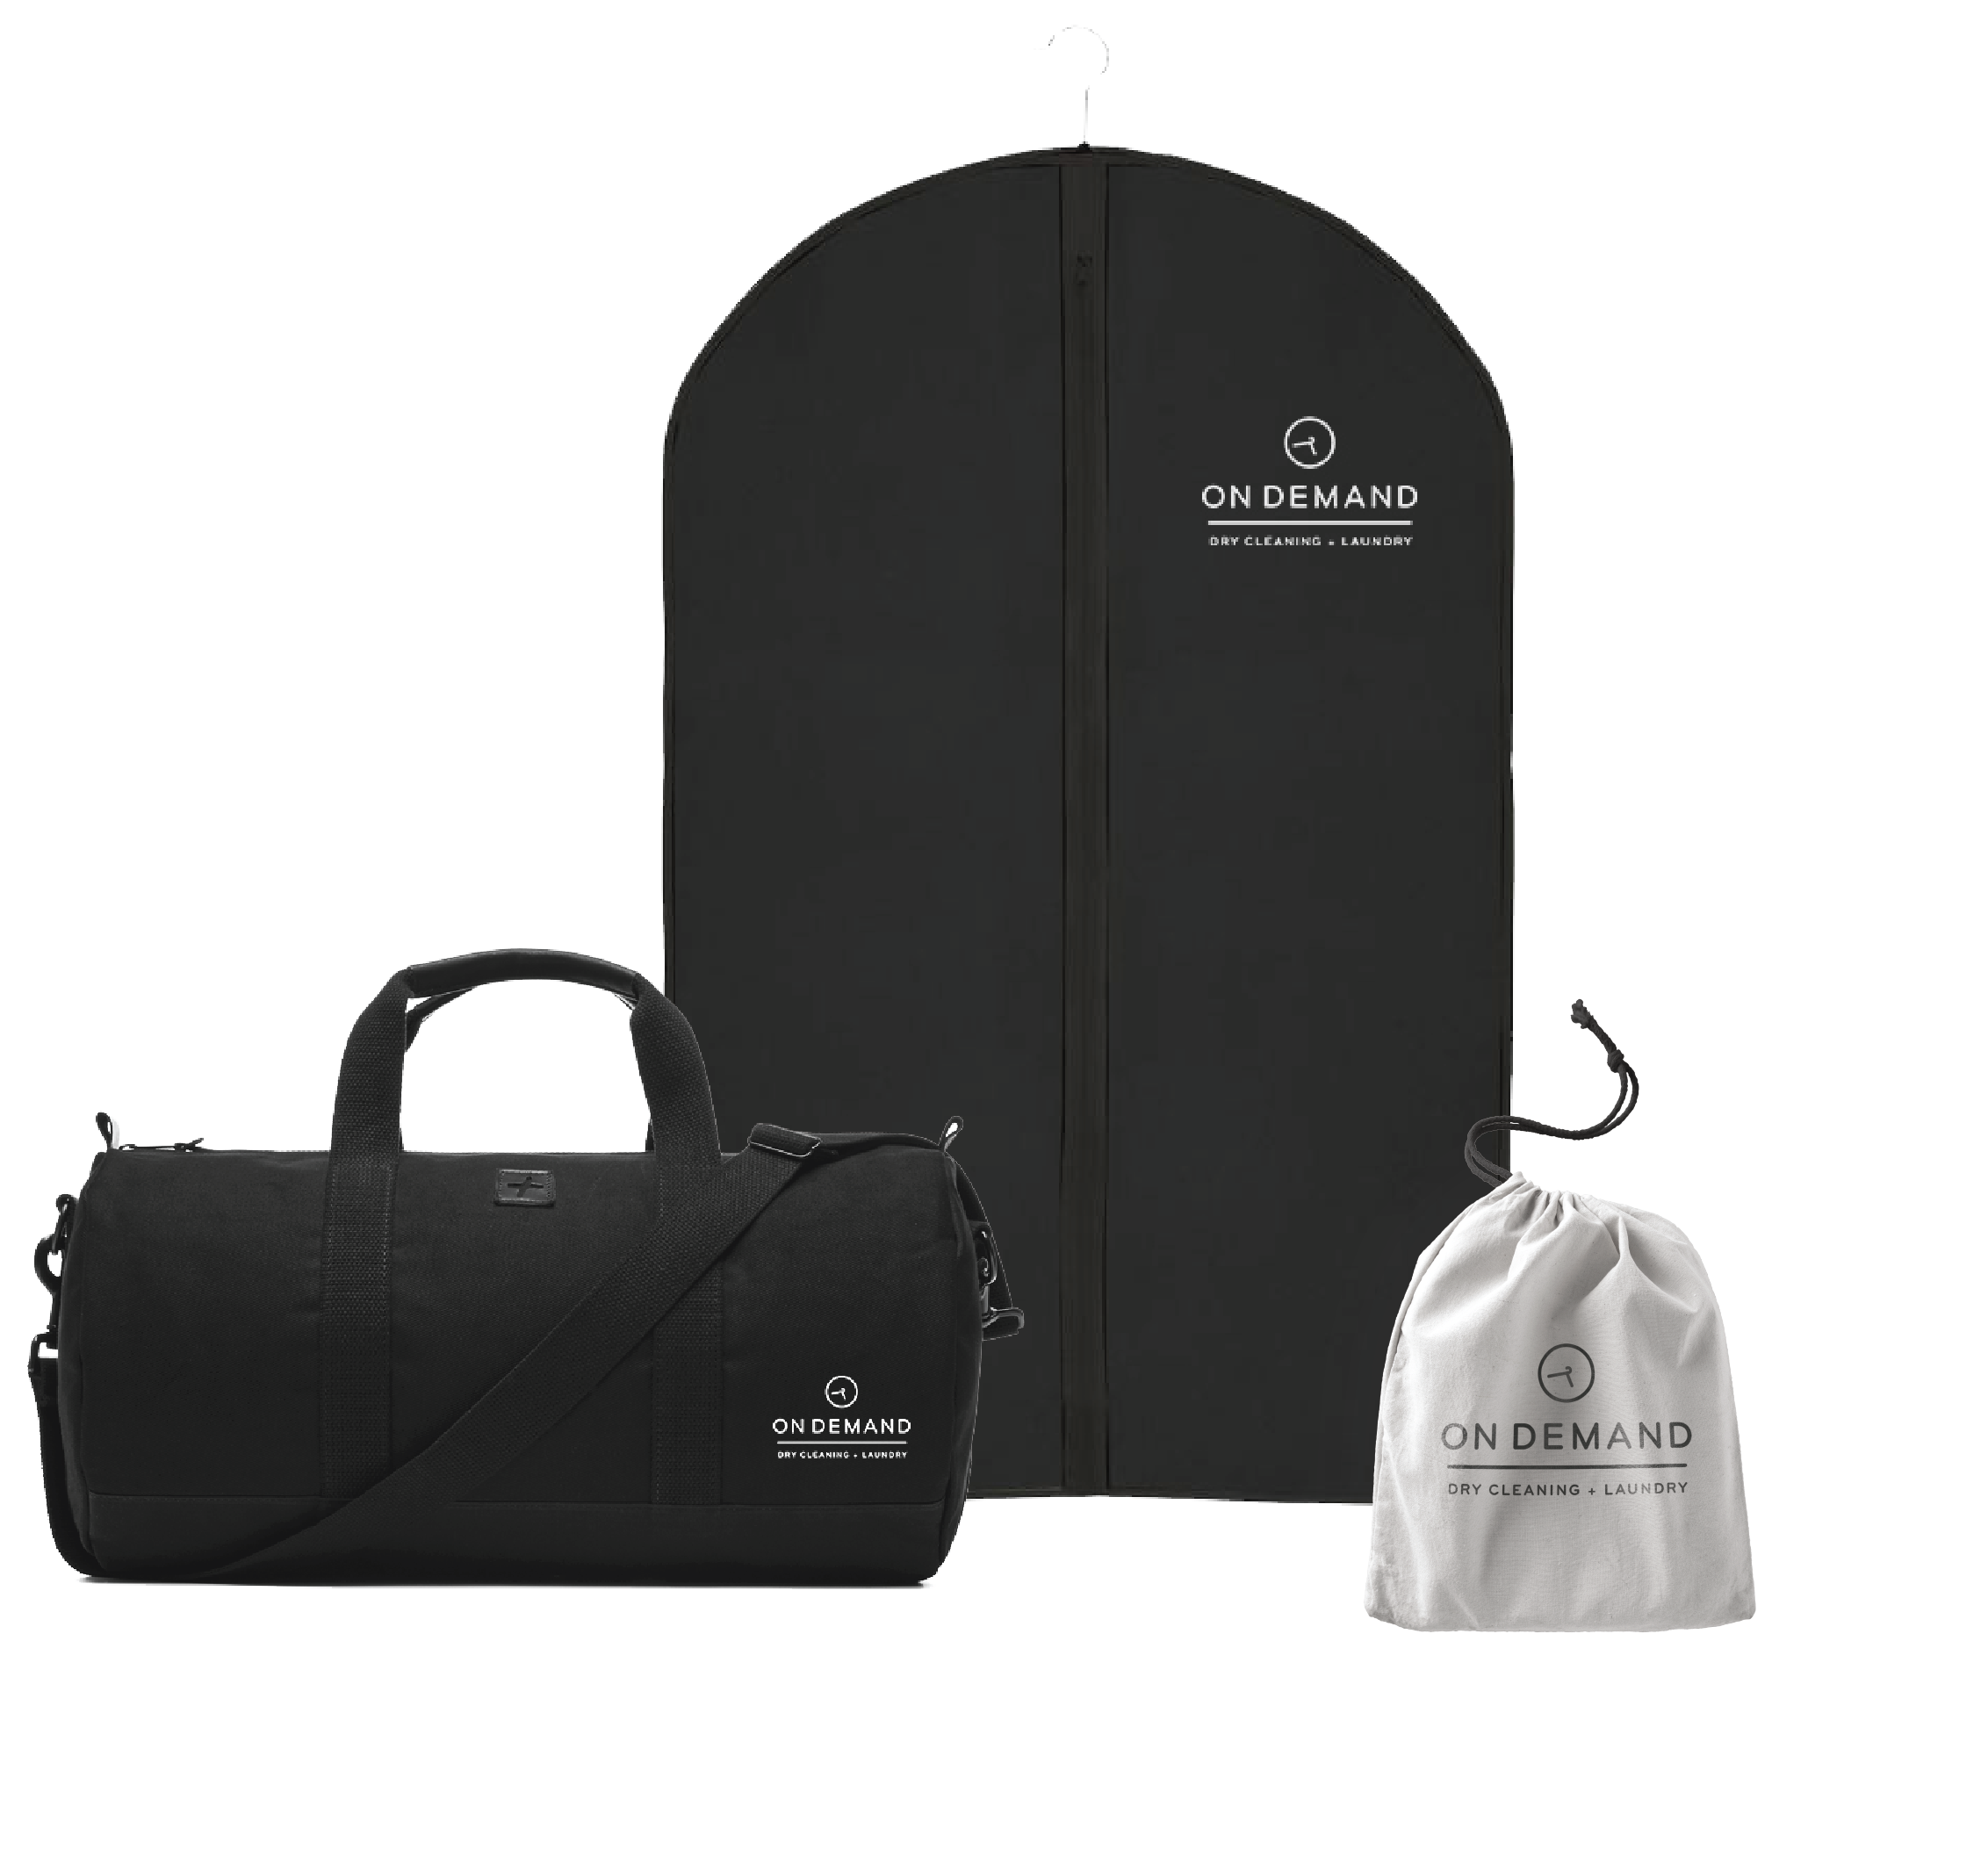 Transportation Bags: - Three different types of bags (made from recycled material) will carefully pick up, transport, and deliver our customers' laundry and/or dry cleaning. The ODDC + L logo will be on each of the bags so employees and customers know which bag to pick up and use.